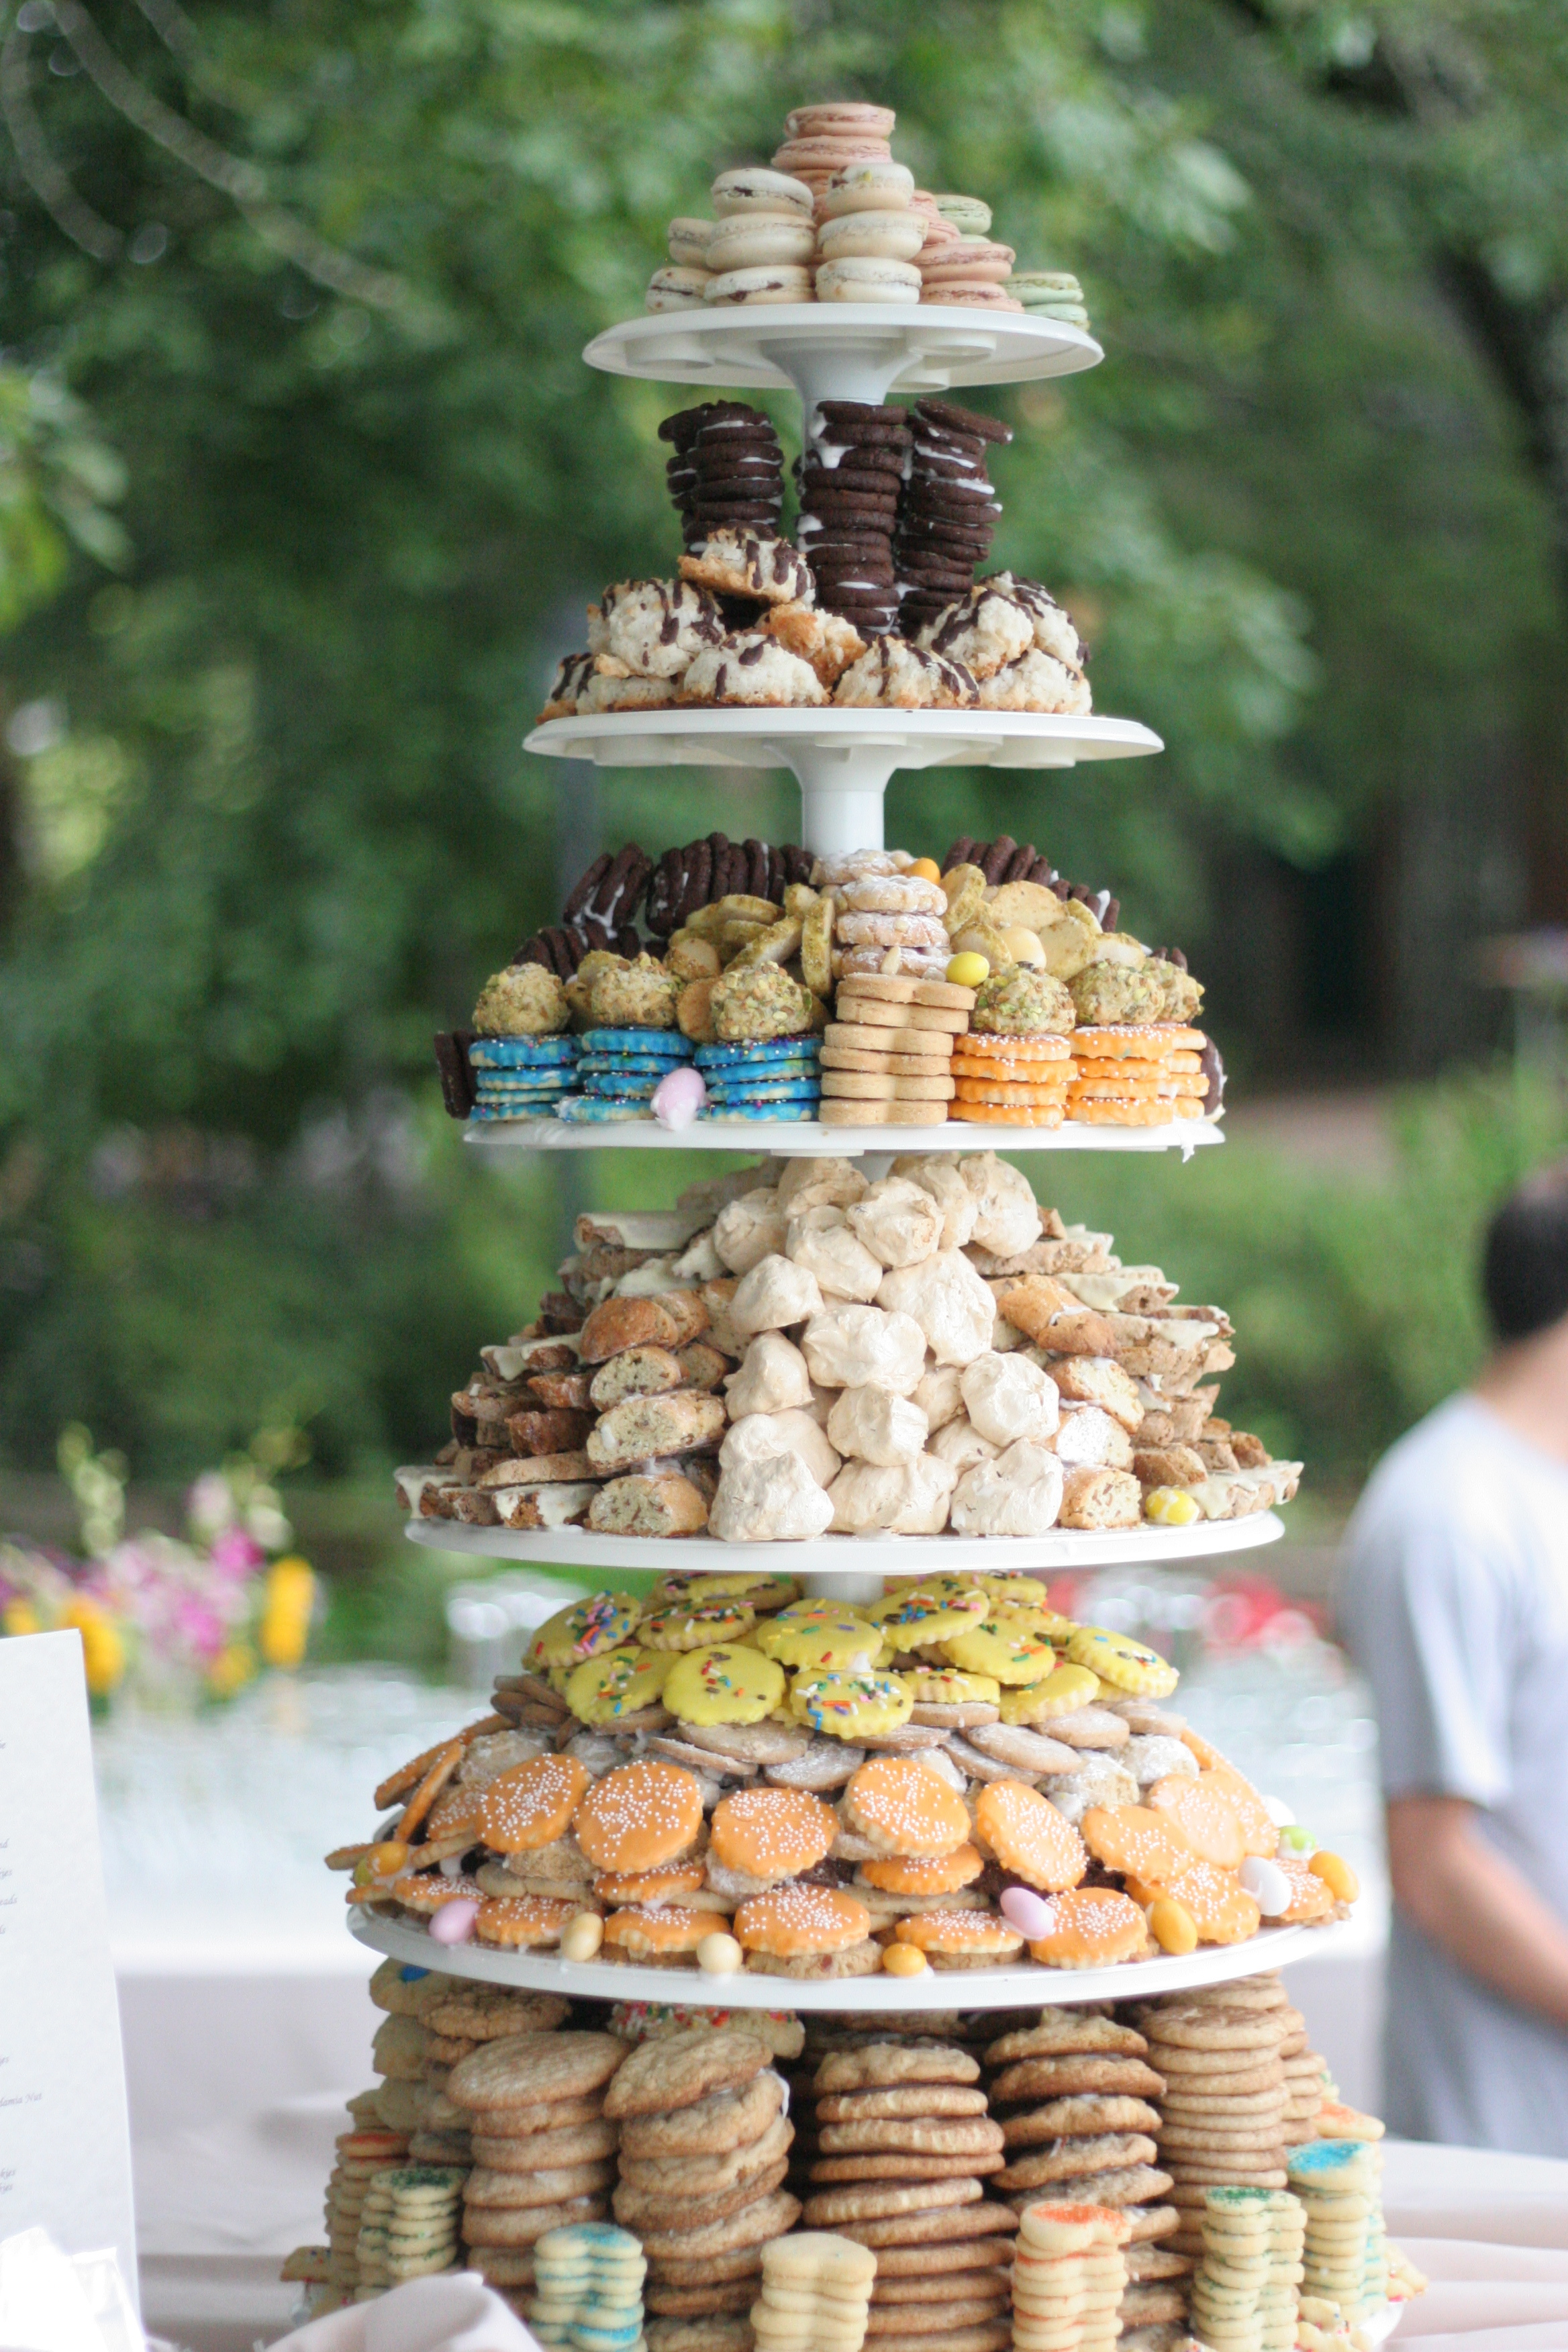 The Wedding Cookie Tower | La Cuoca Ciccia